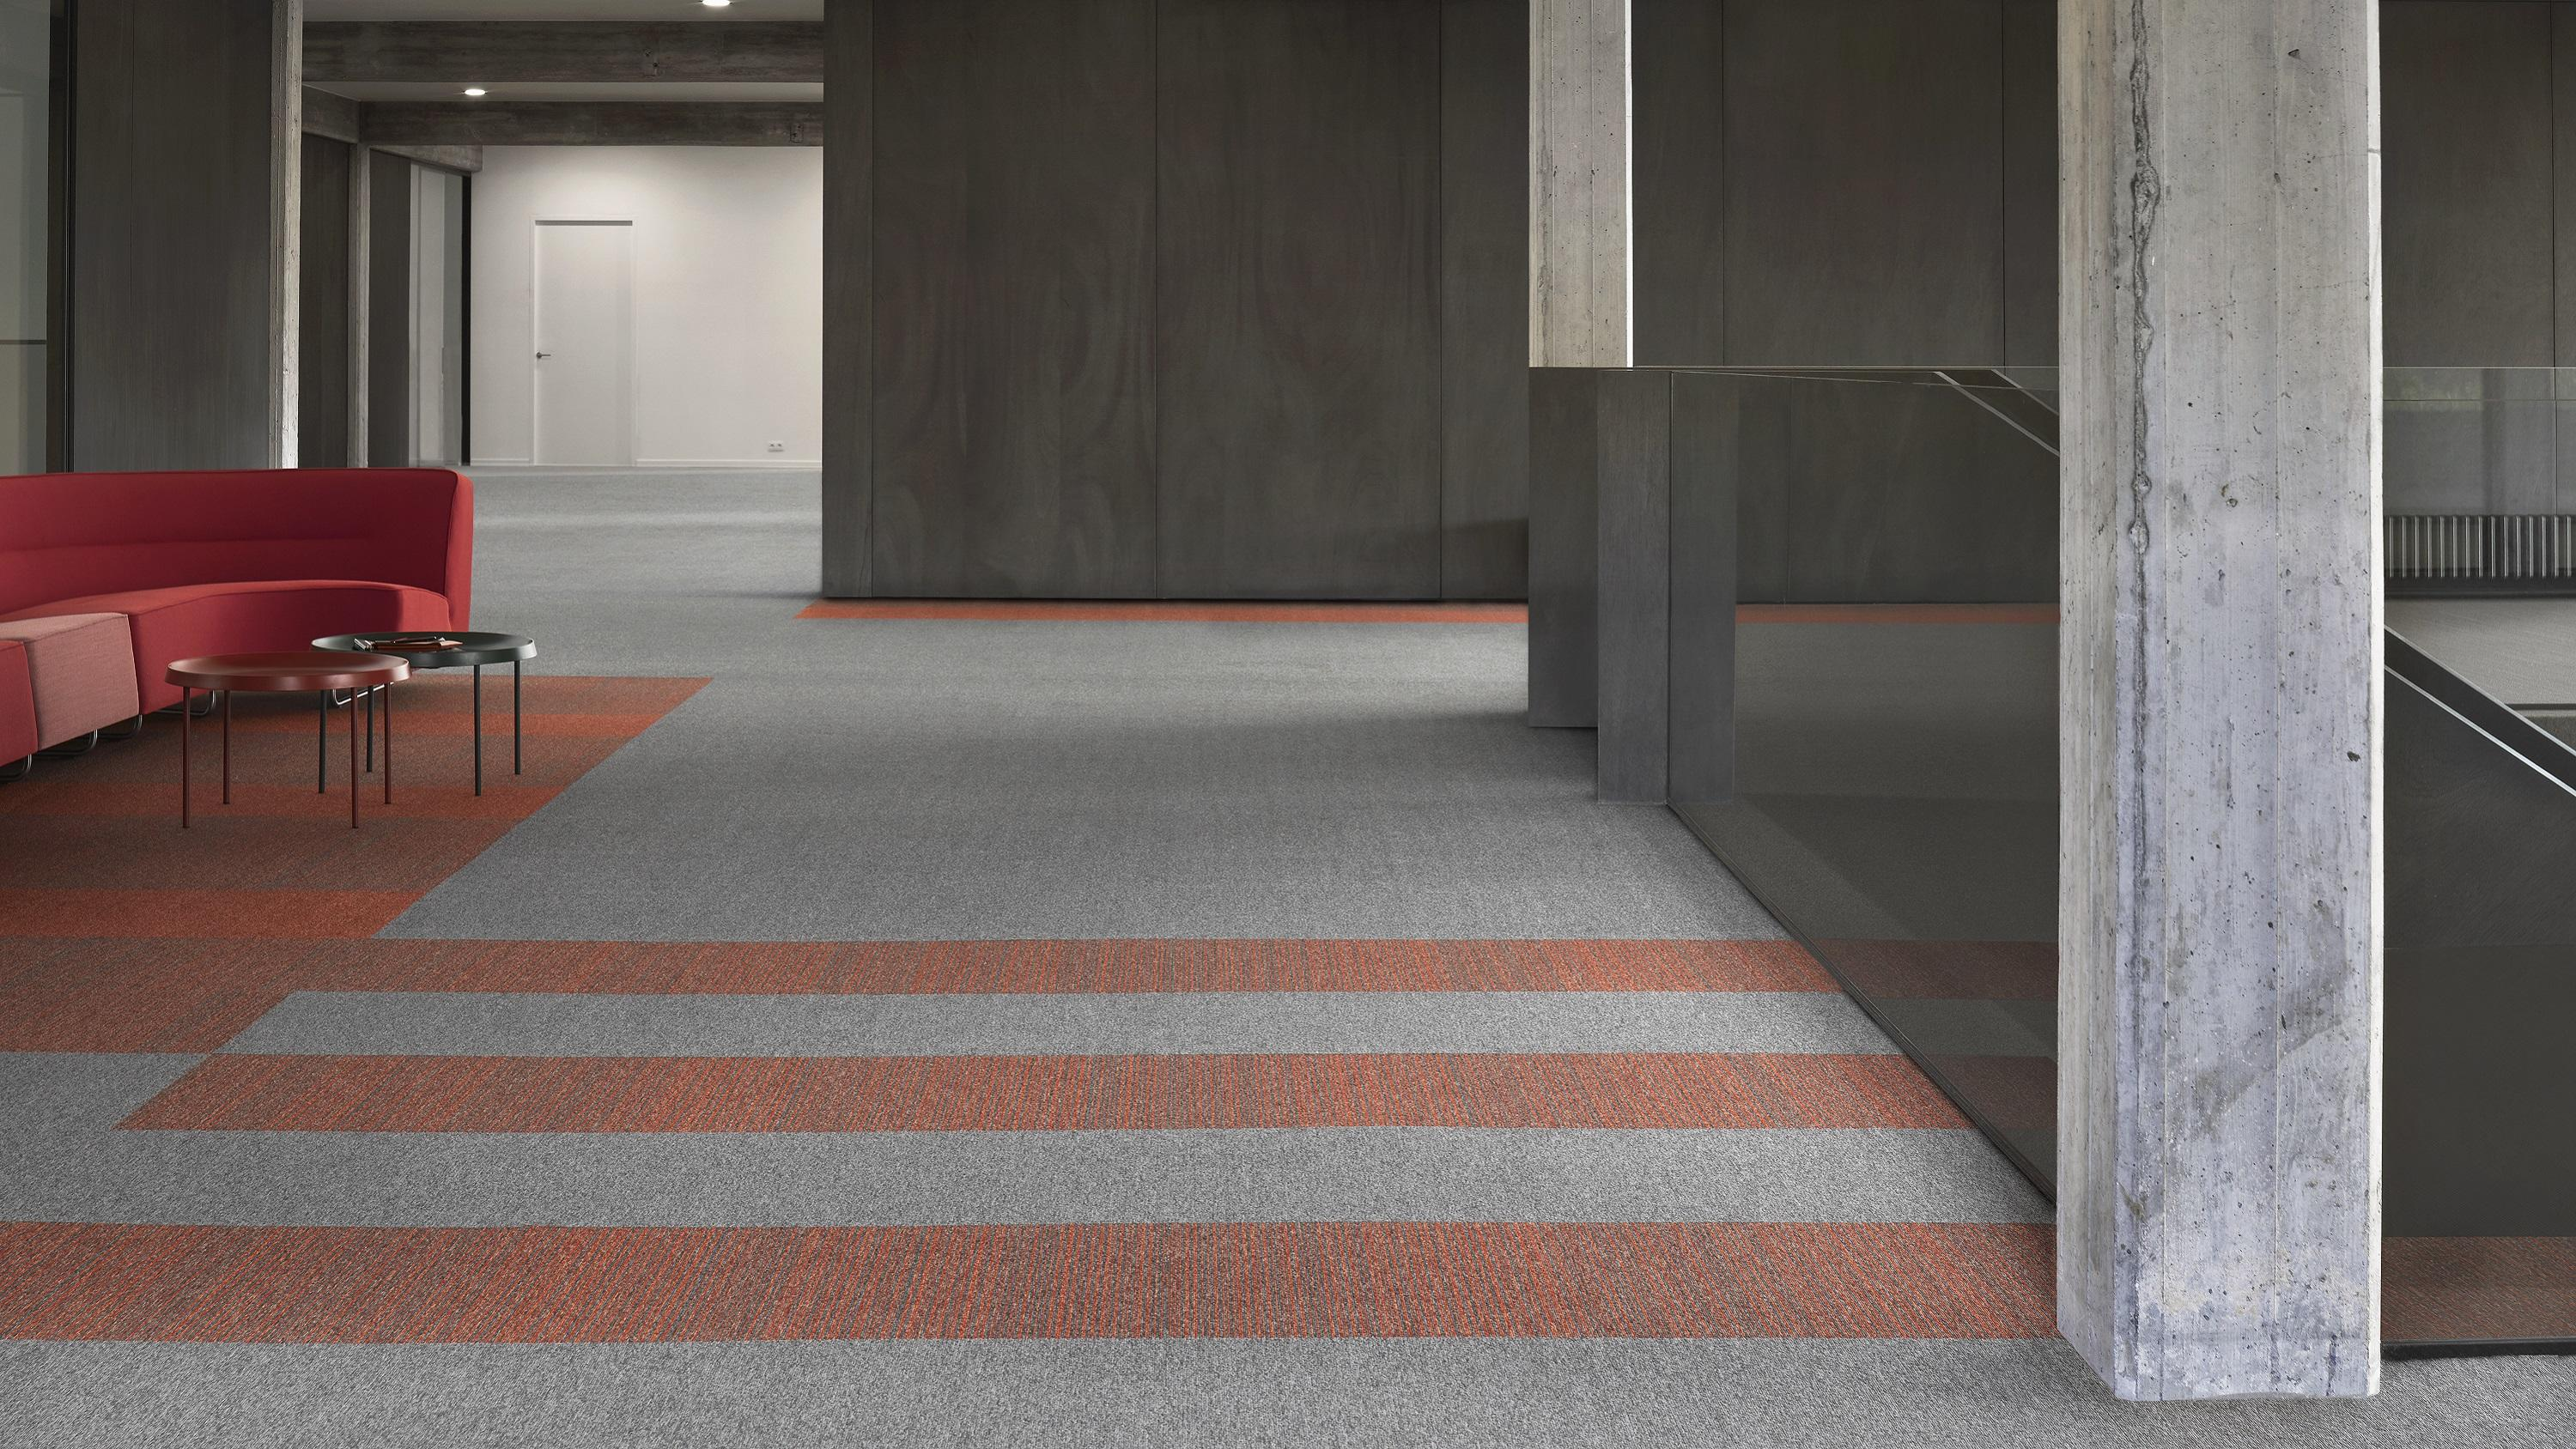 Tarkett Holding Gmbh Desso Essence Wall-to-wall Carpet & Carpet Tiles | Interiorpark.